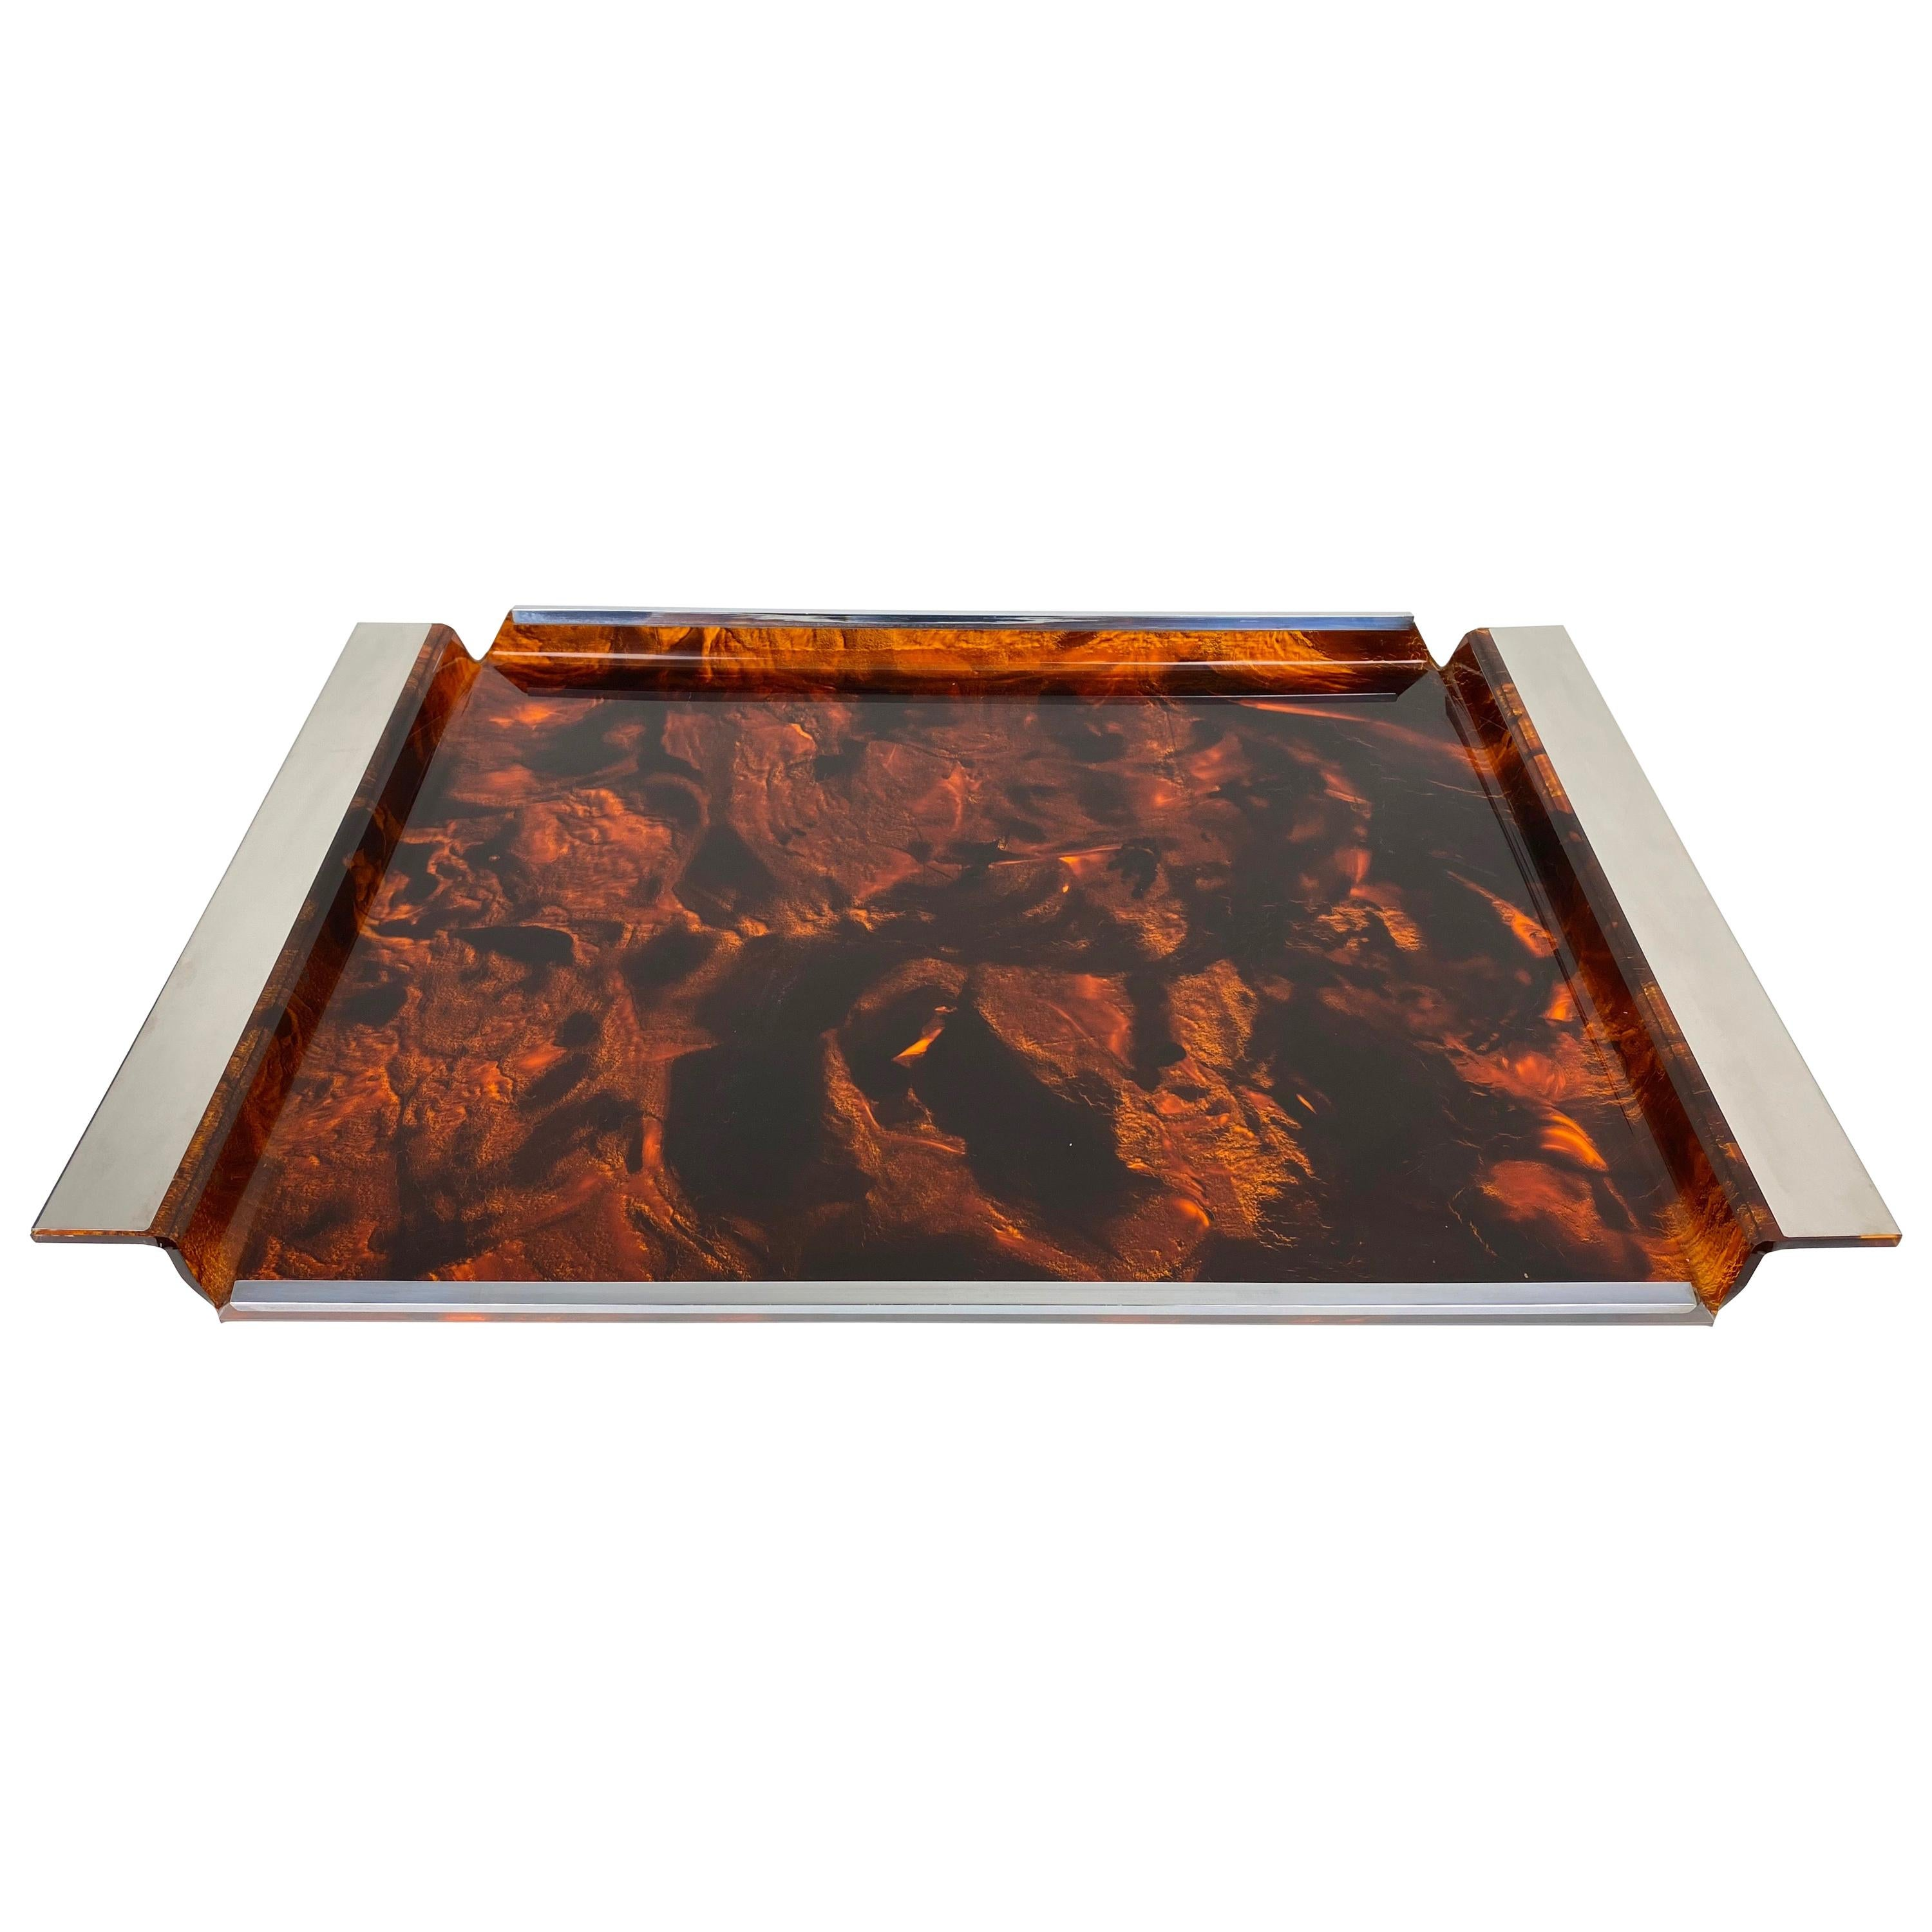 Serving Tray Faux Tortoise Shell Lucite and Chrome 1970s Willy Rizzo Style Italy